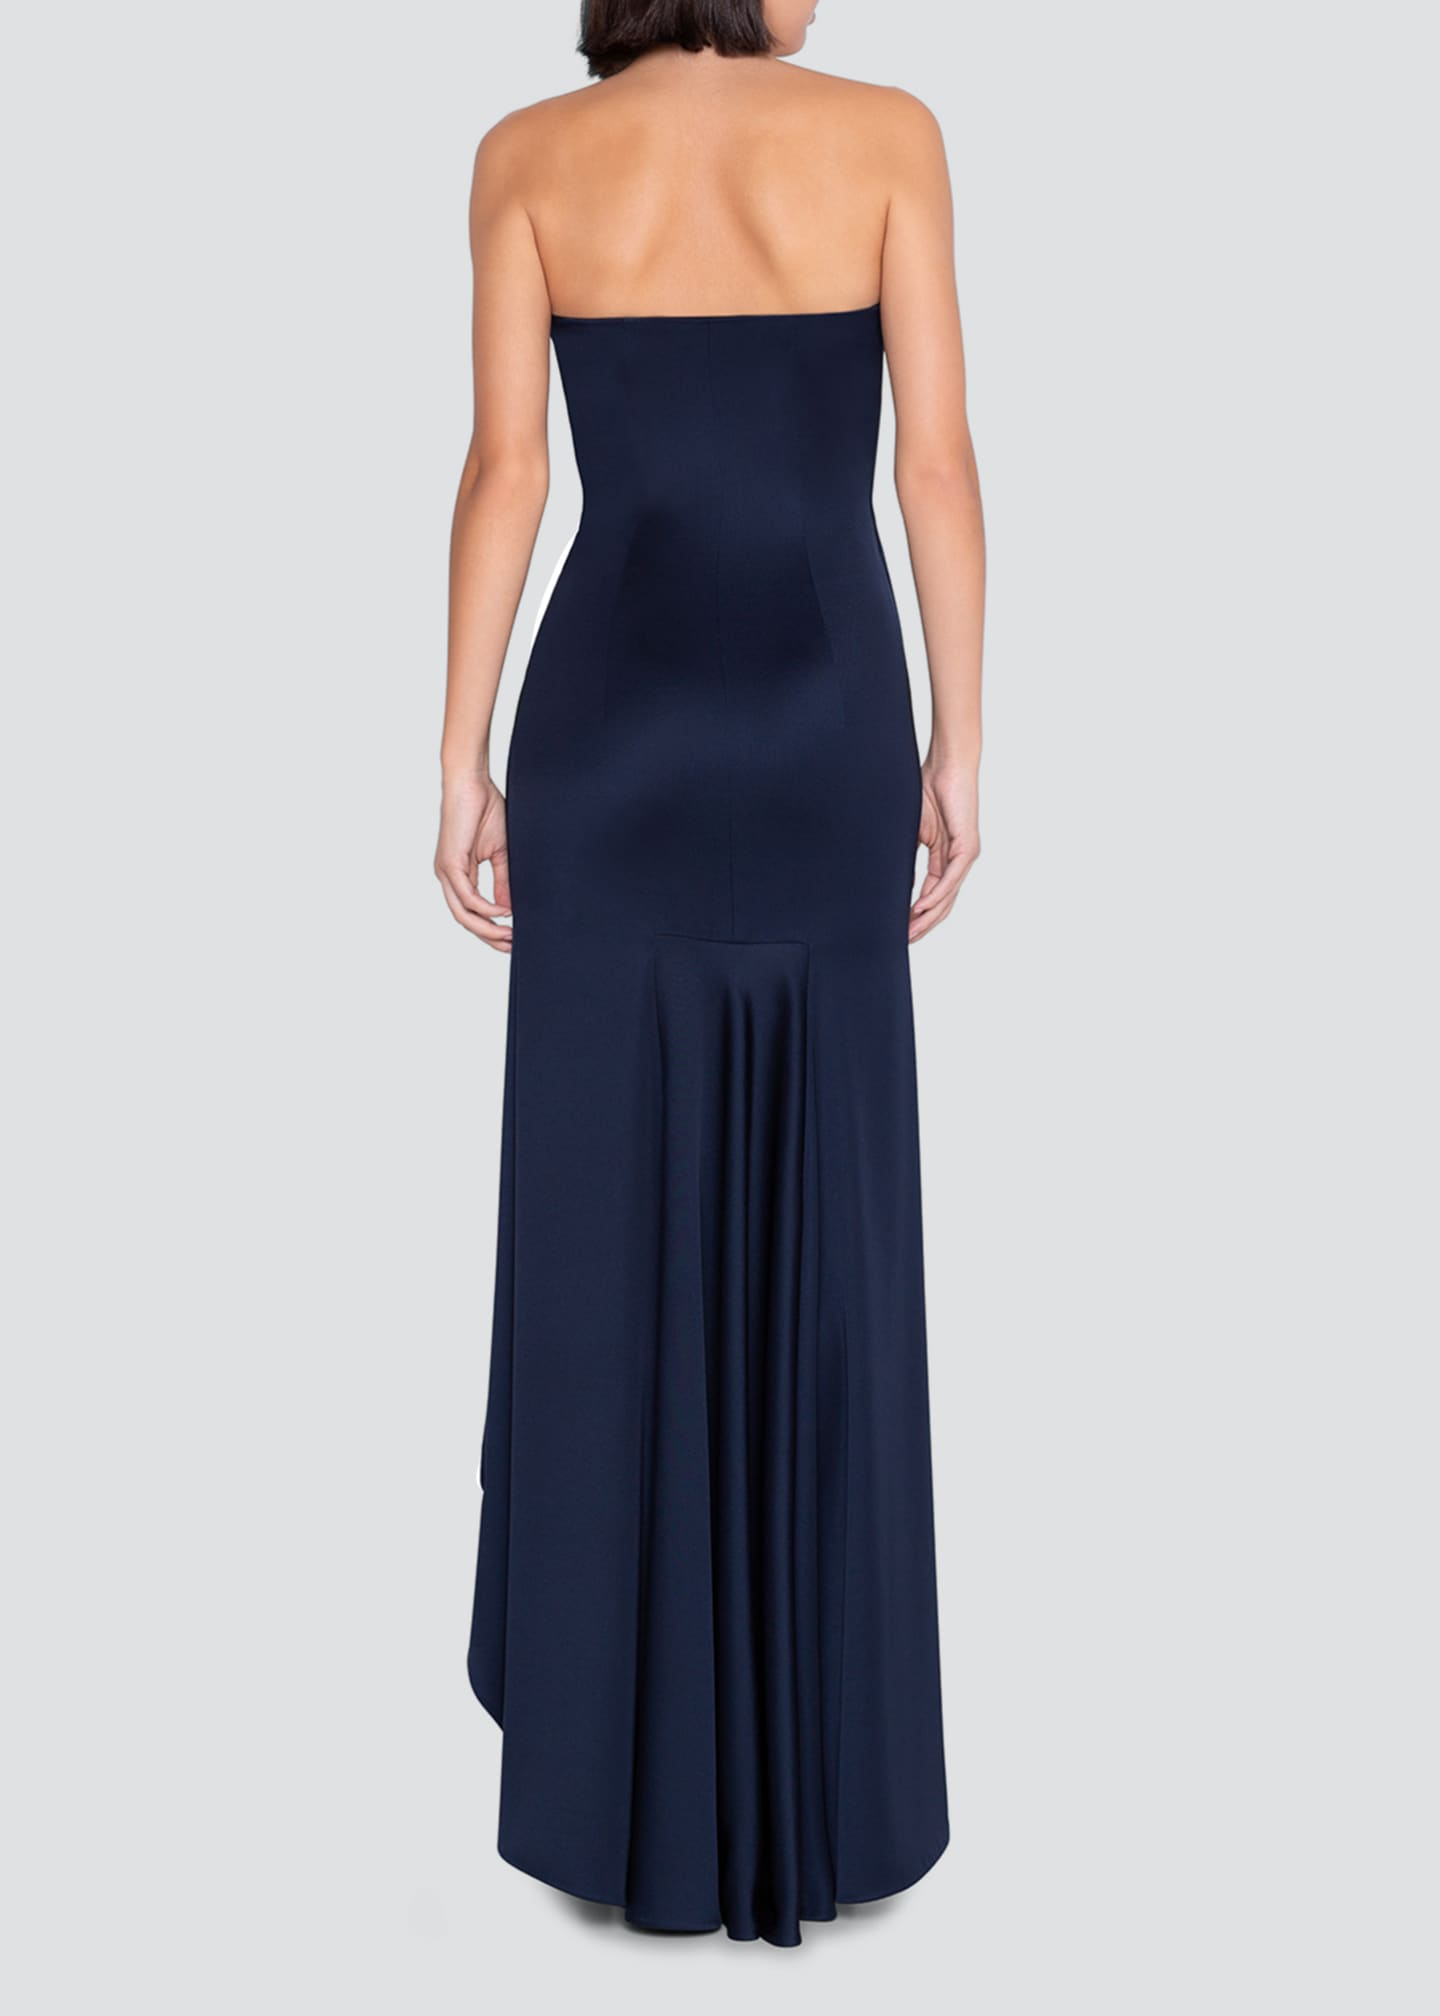 Image 2 of 2: Stretch Silk Strapless High-Low Dress